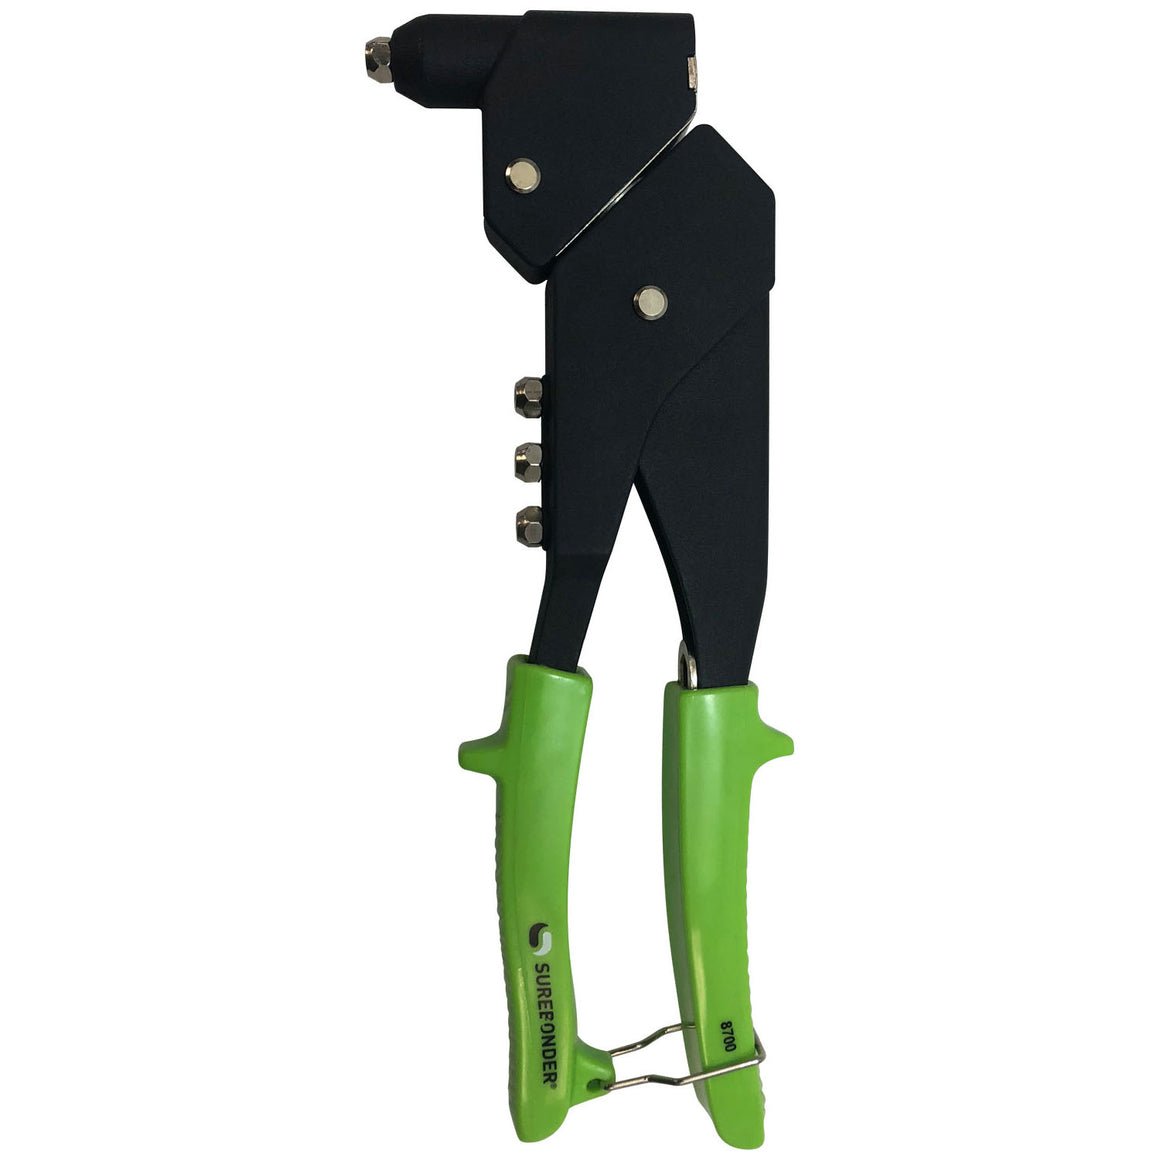 Surebonder swivel head rivet tool, heavy duty, green handle, head rotates 360 degrees, steel construction